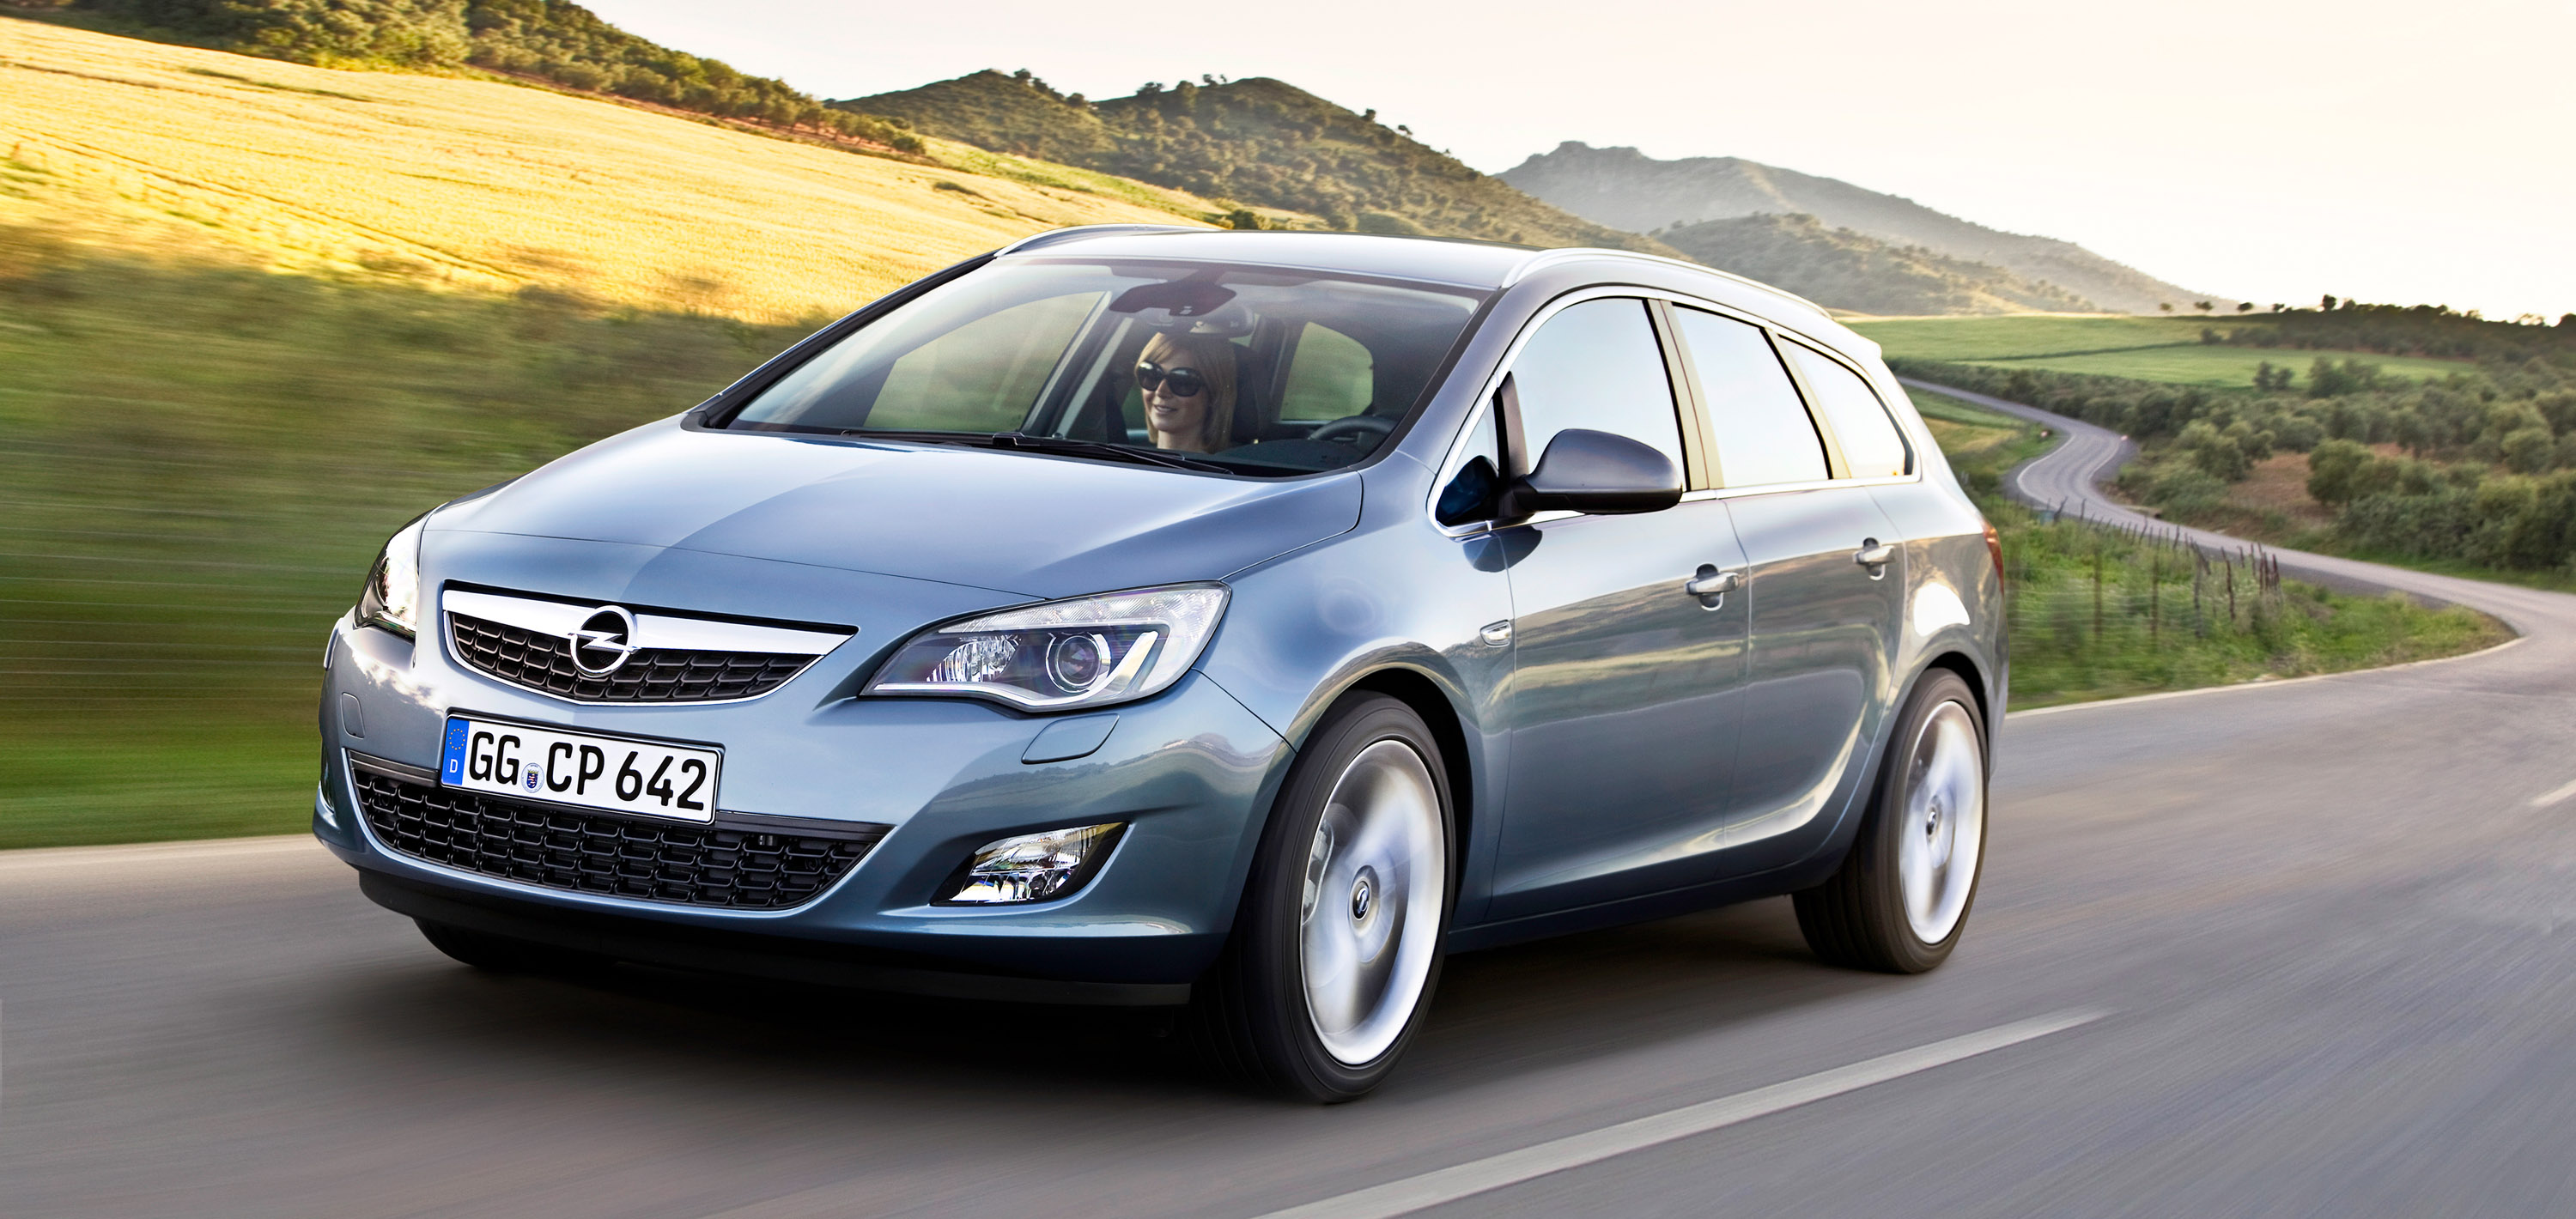 Captivating ... 2011 Opel Astra Sports Tourer, ...